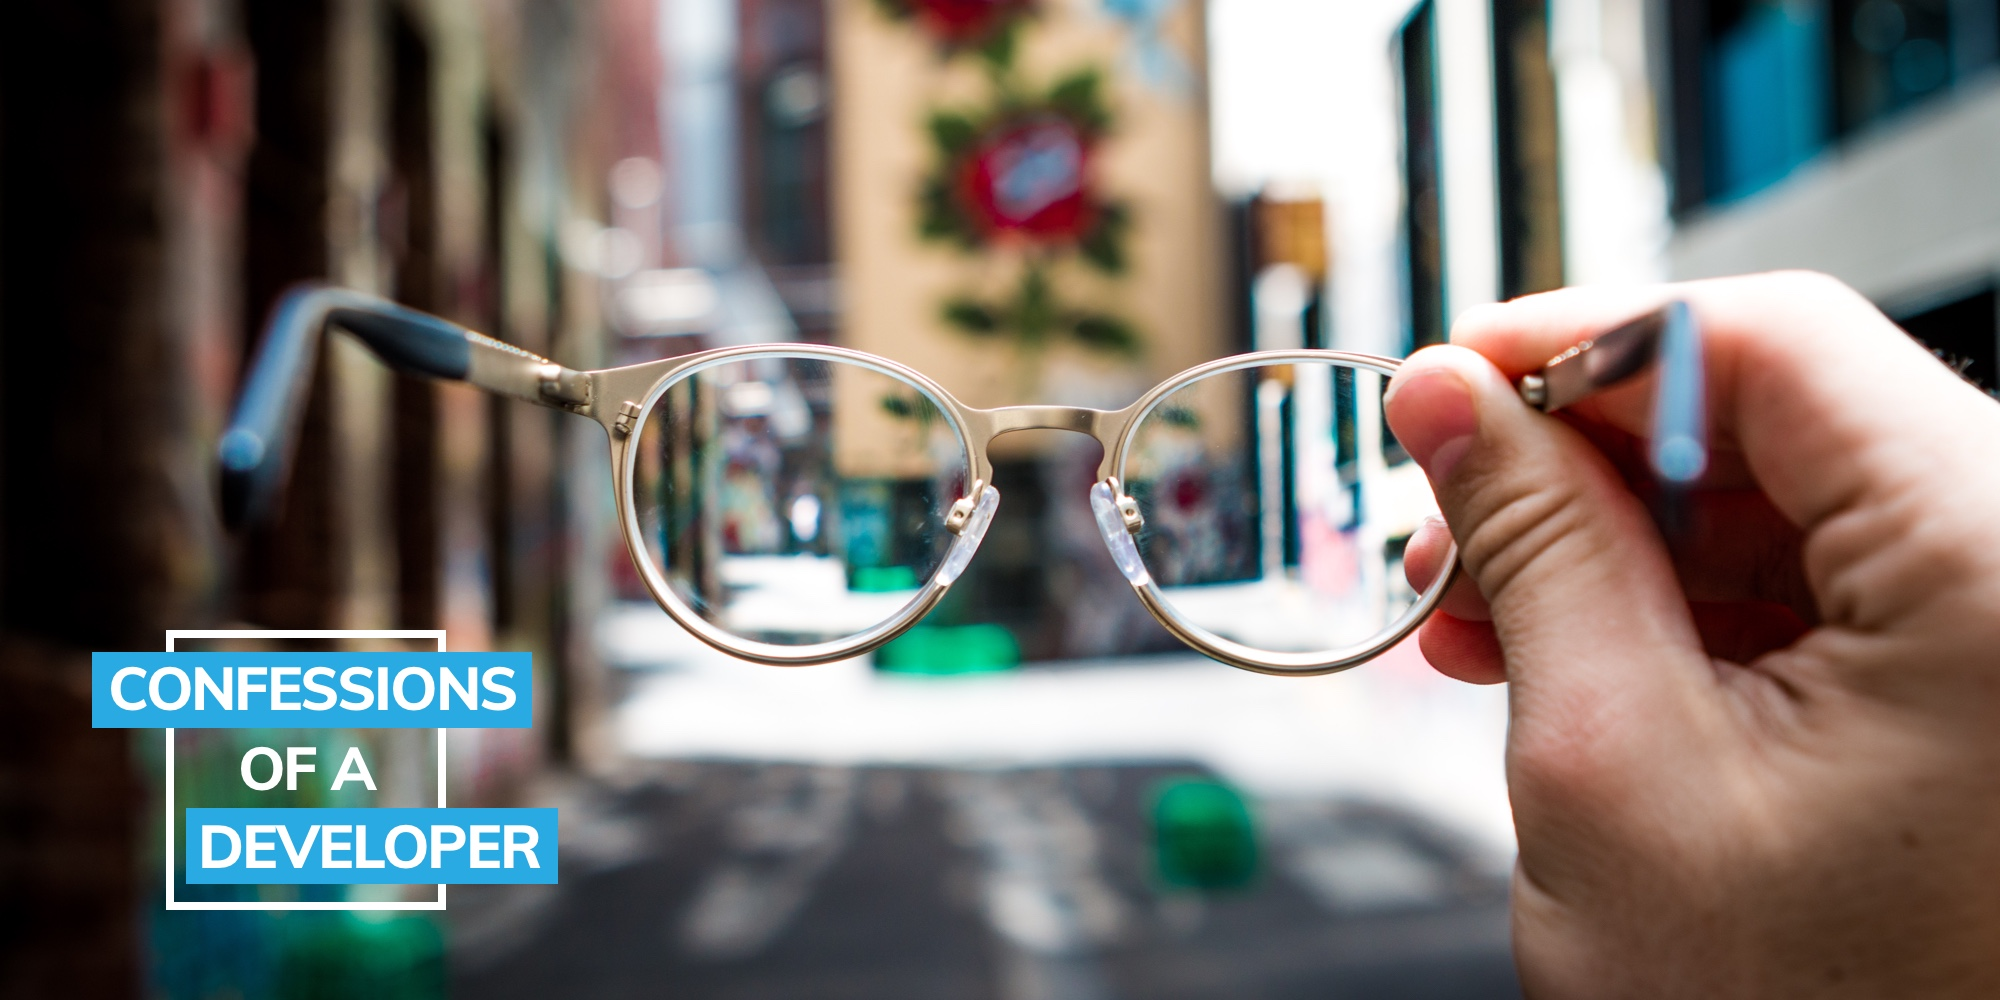 Blog image of looking through a pair of glasses for confessions of a developer